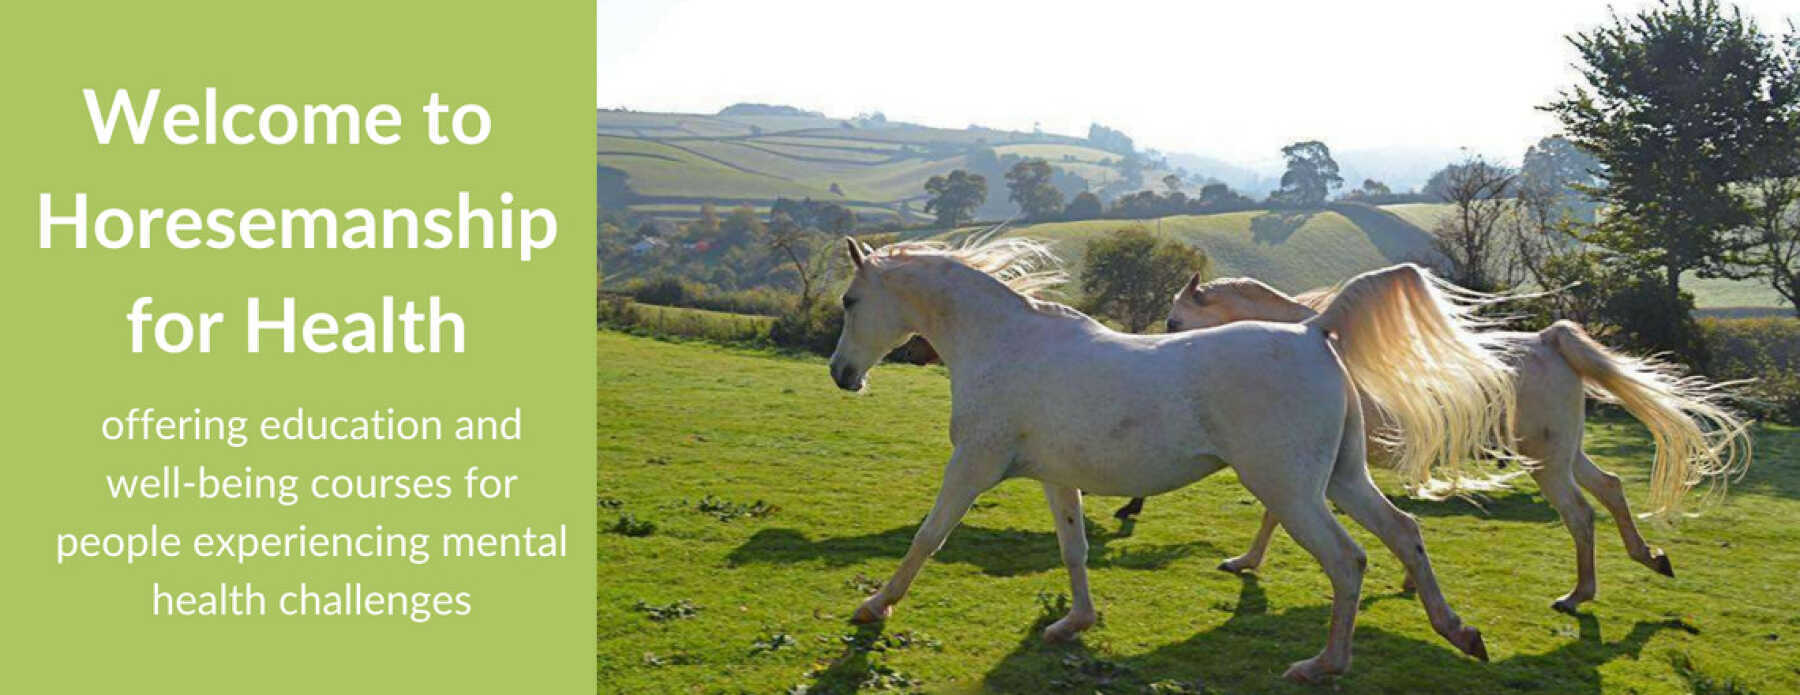 Featured Image for Horsemanship for Health UK